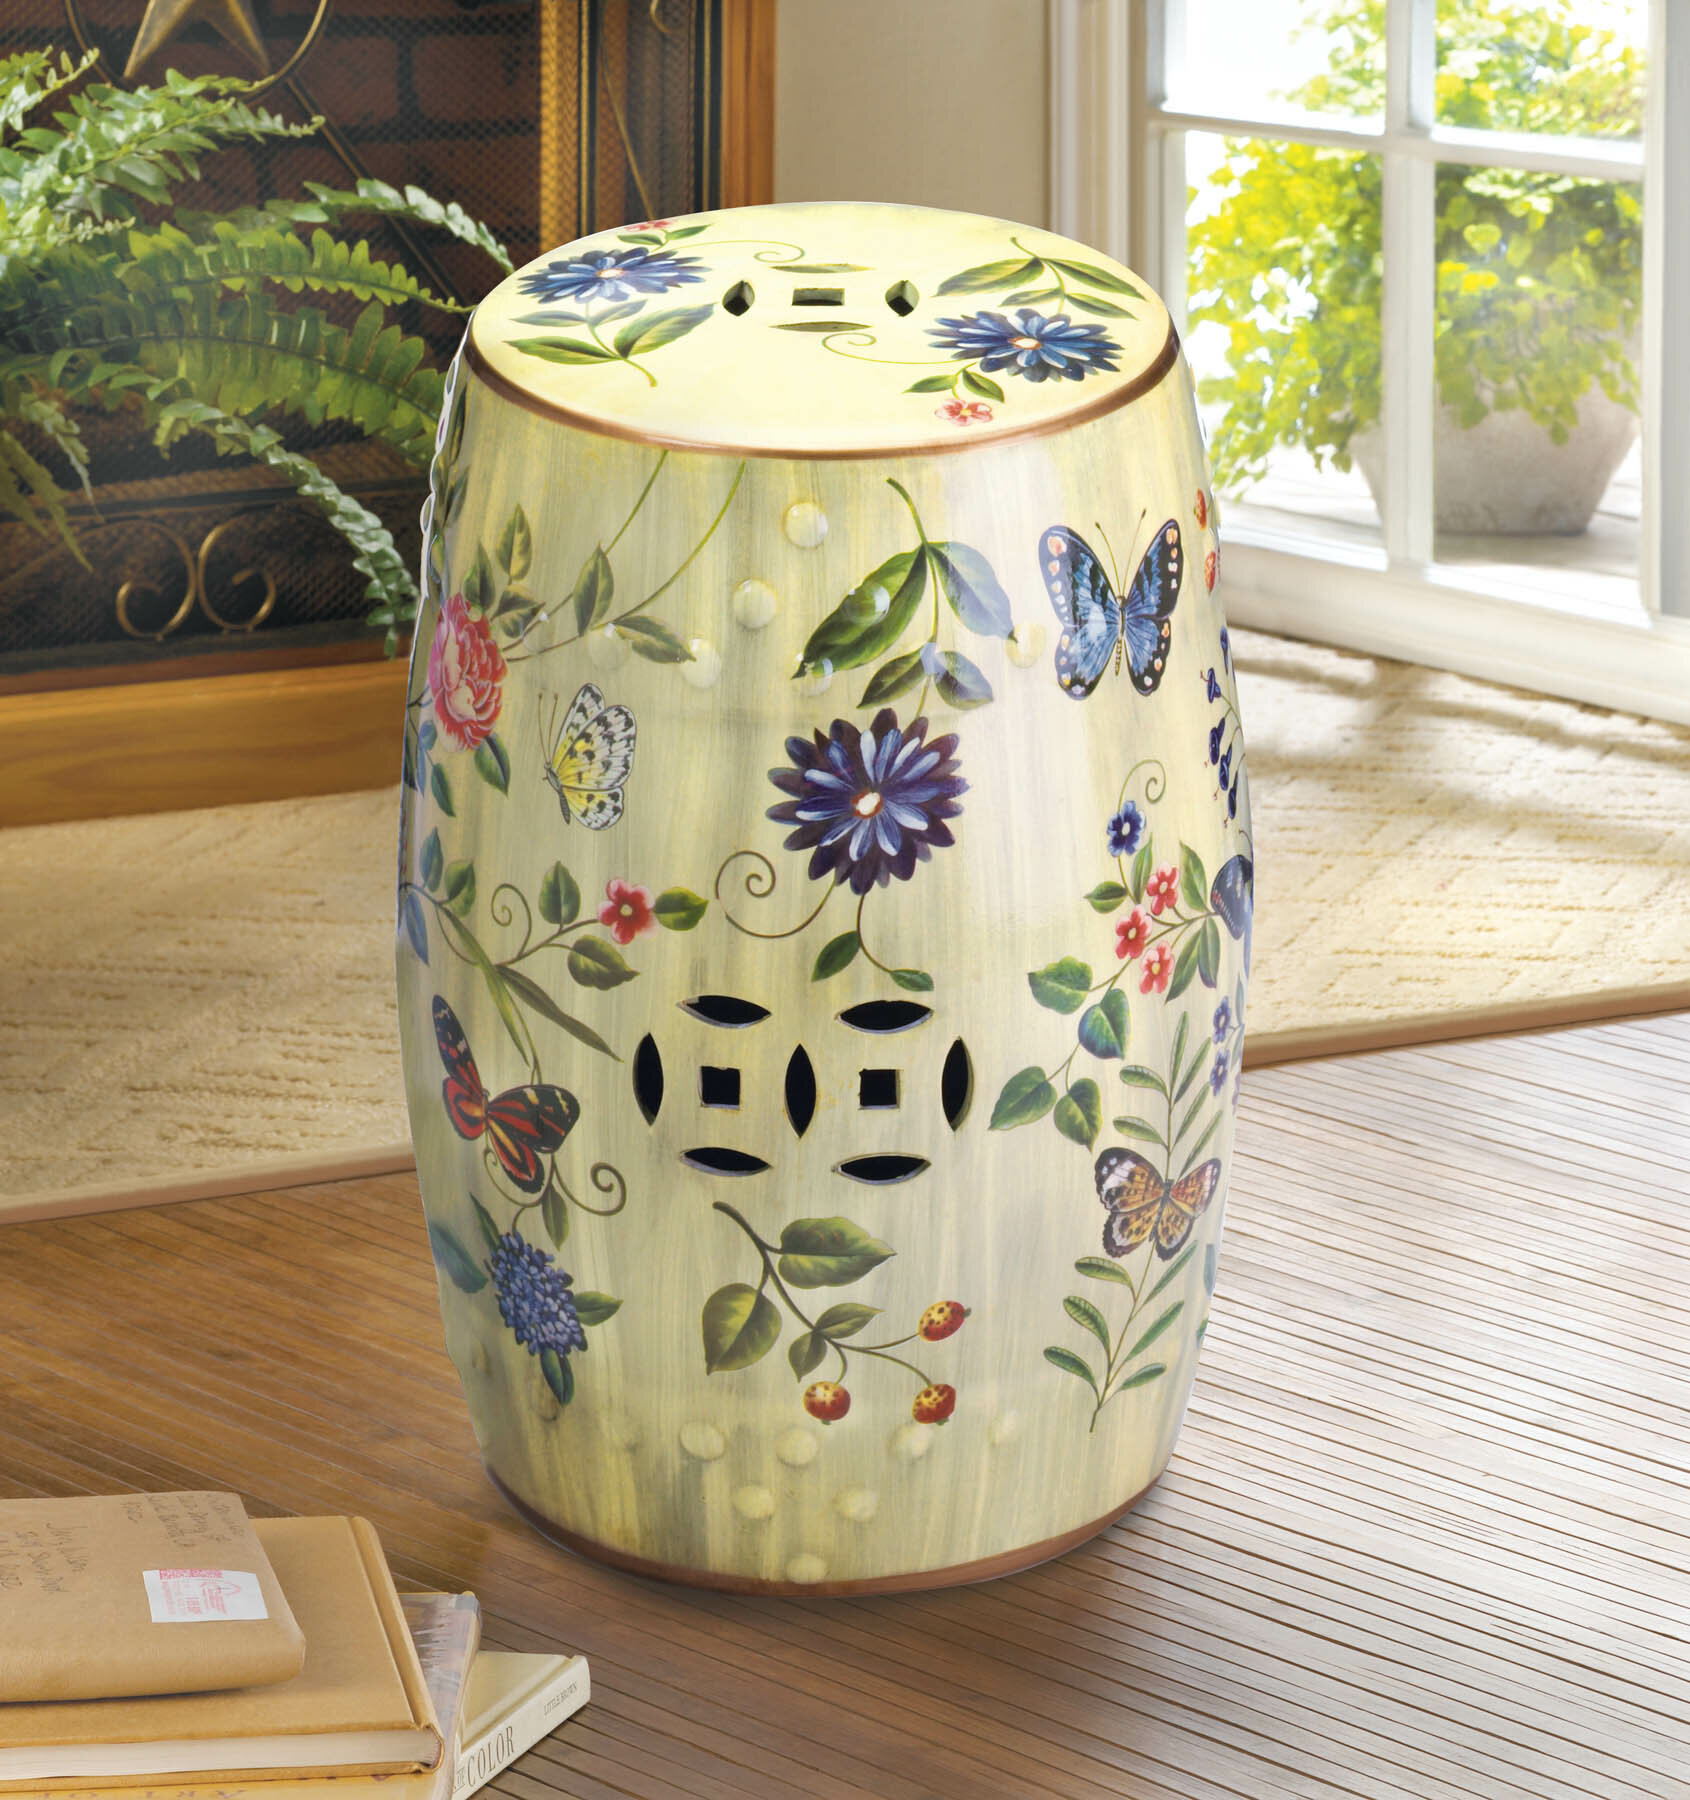 Ceramic Table Stools | Wayfair With Beckemeyer Ceramic Garden Stools (View 19 of 25)